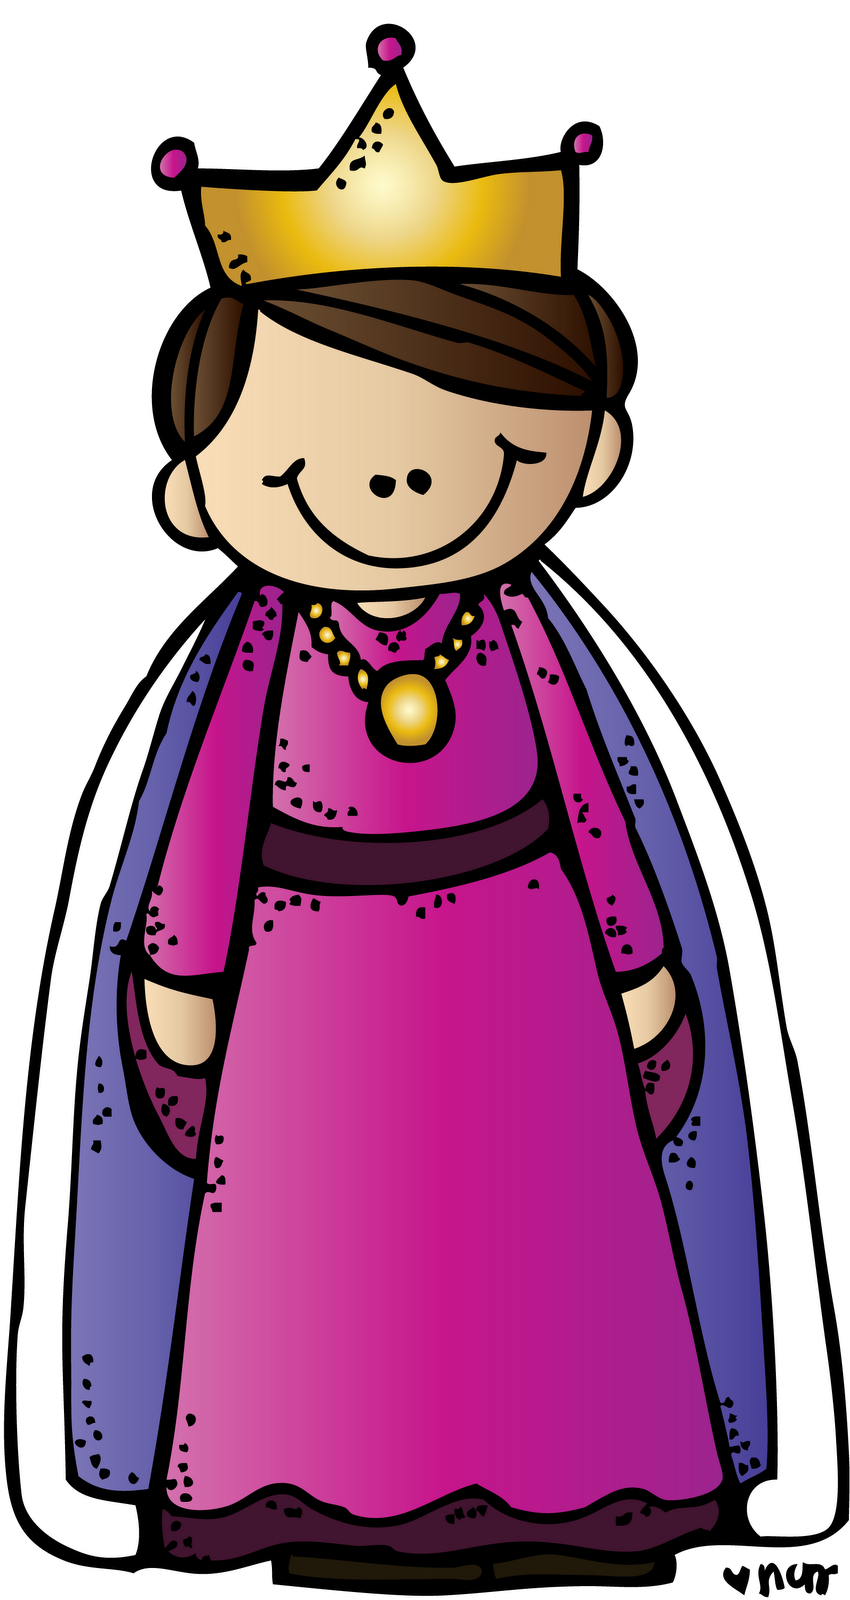 melonheadz october 2012 clip art queen of the south oes clip art queen crown